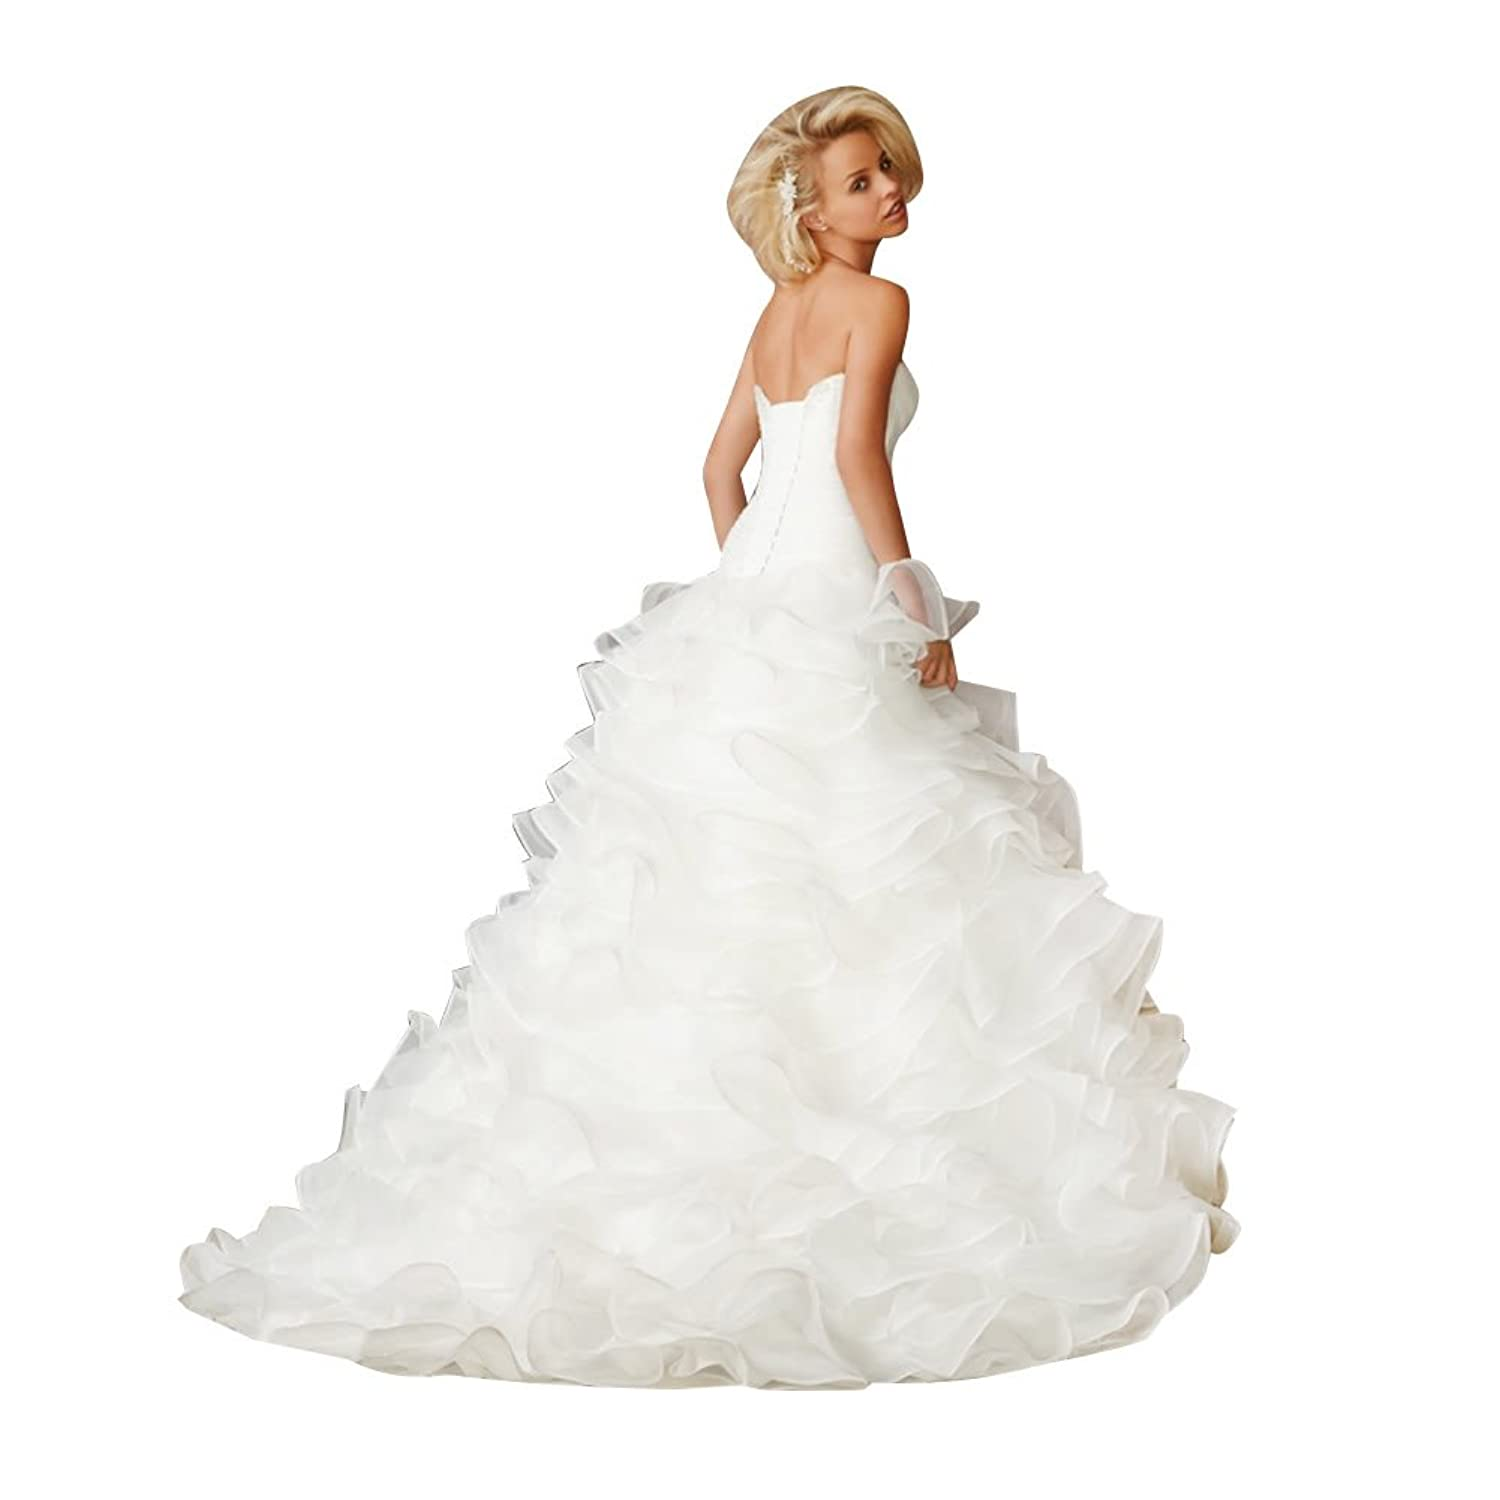 GEORGE BRIDE Sweetheart Neckline Organza Over Satin Tiered Wedding Dress